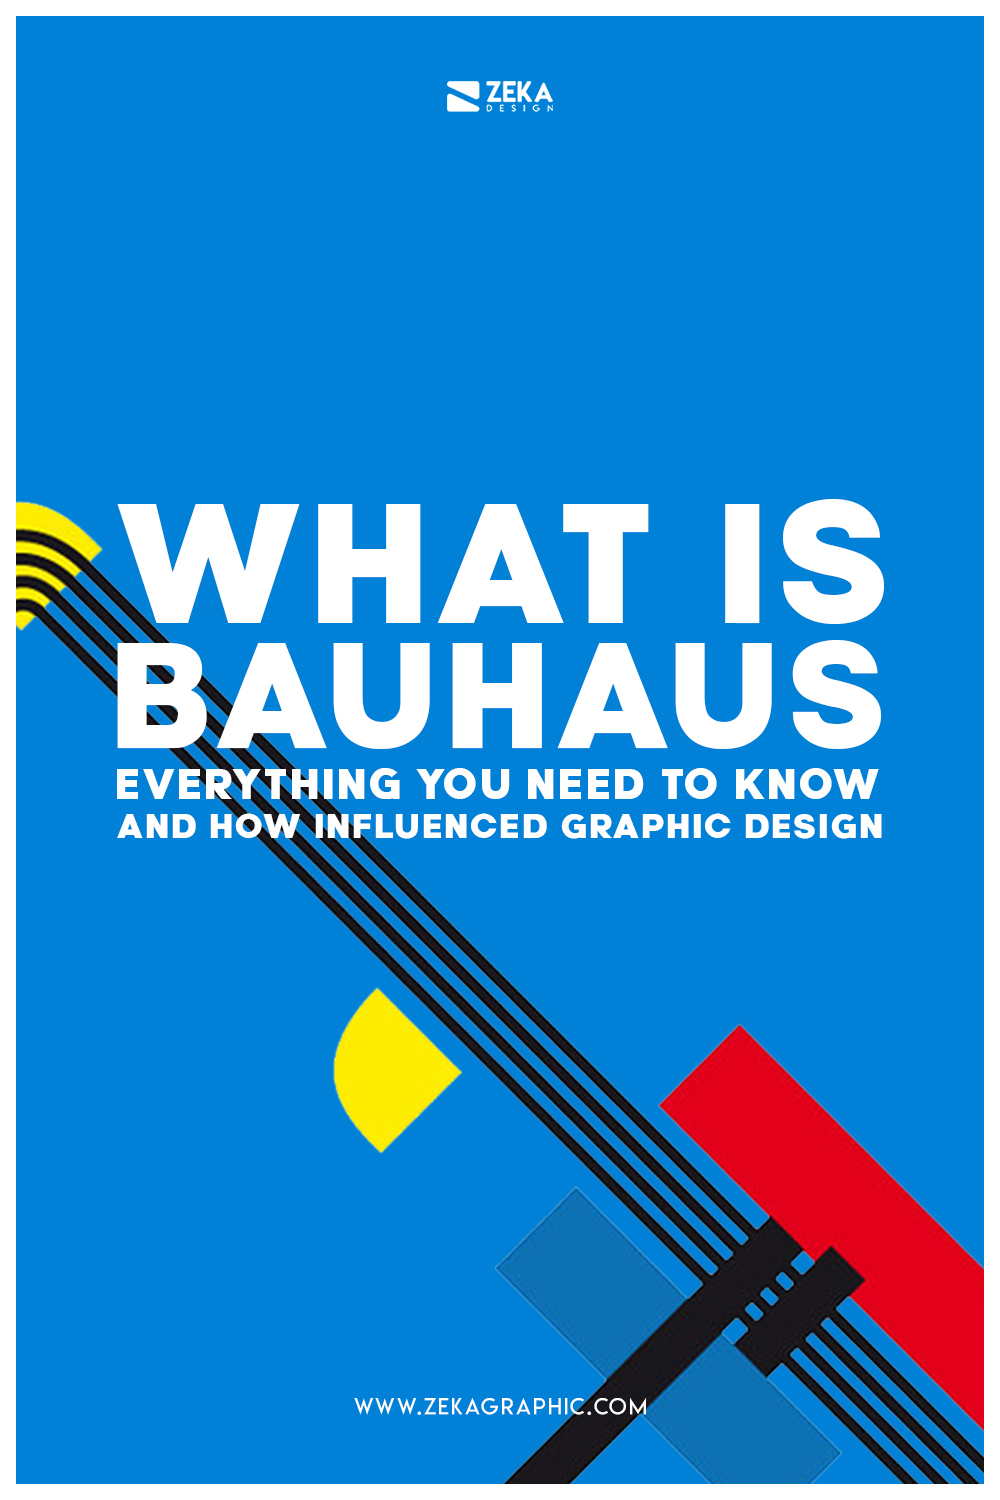 What Is Bauhaus Art Movement And Graphic Design Influence